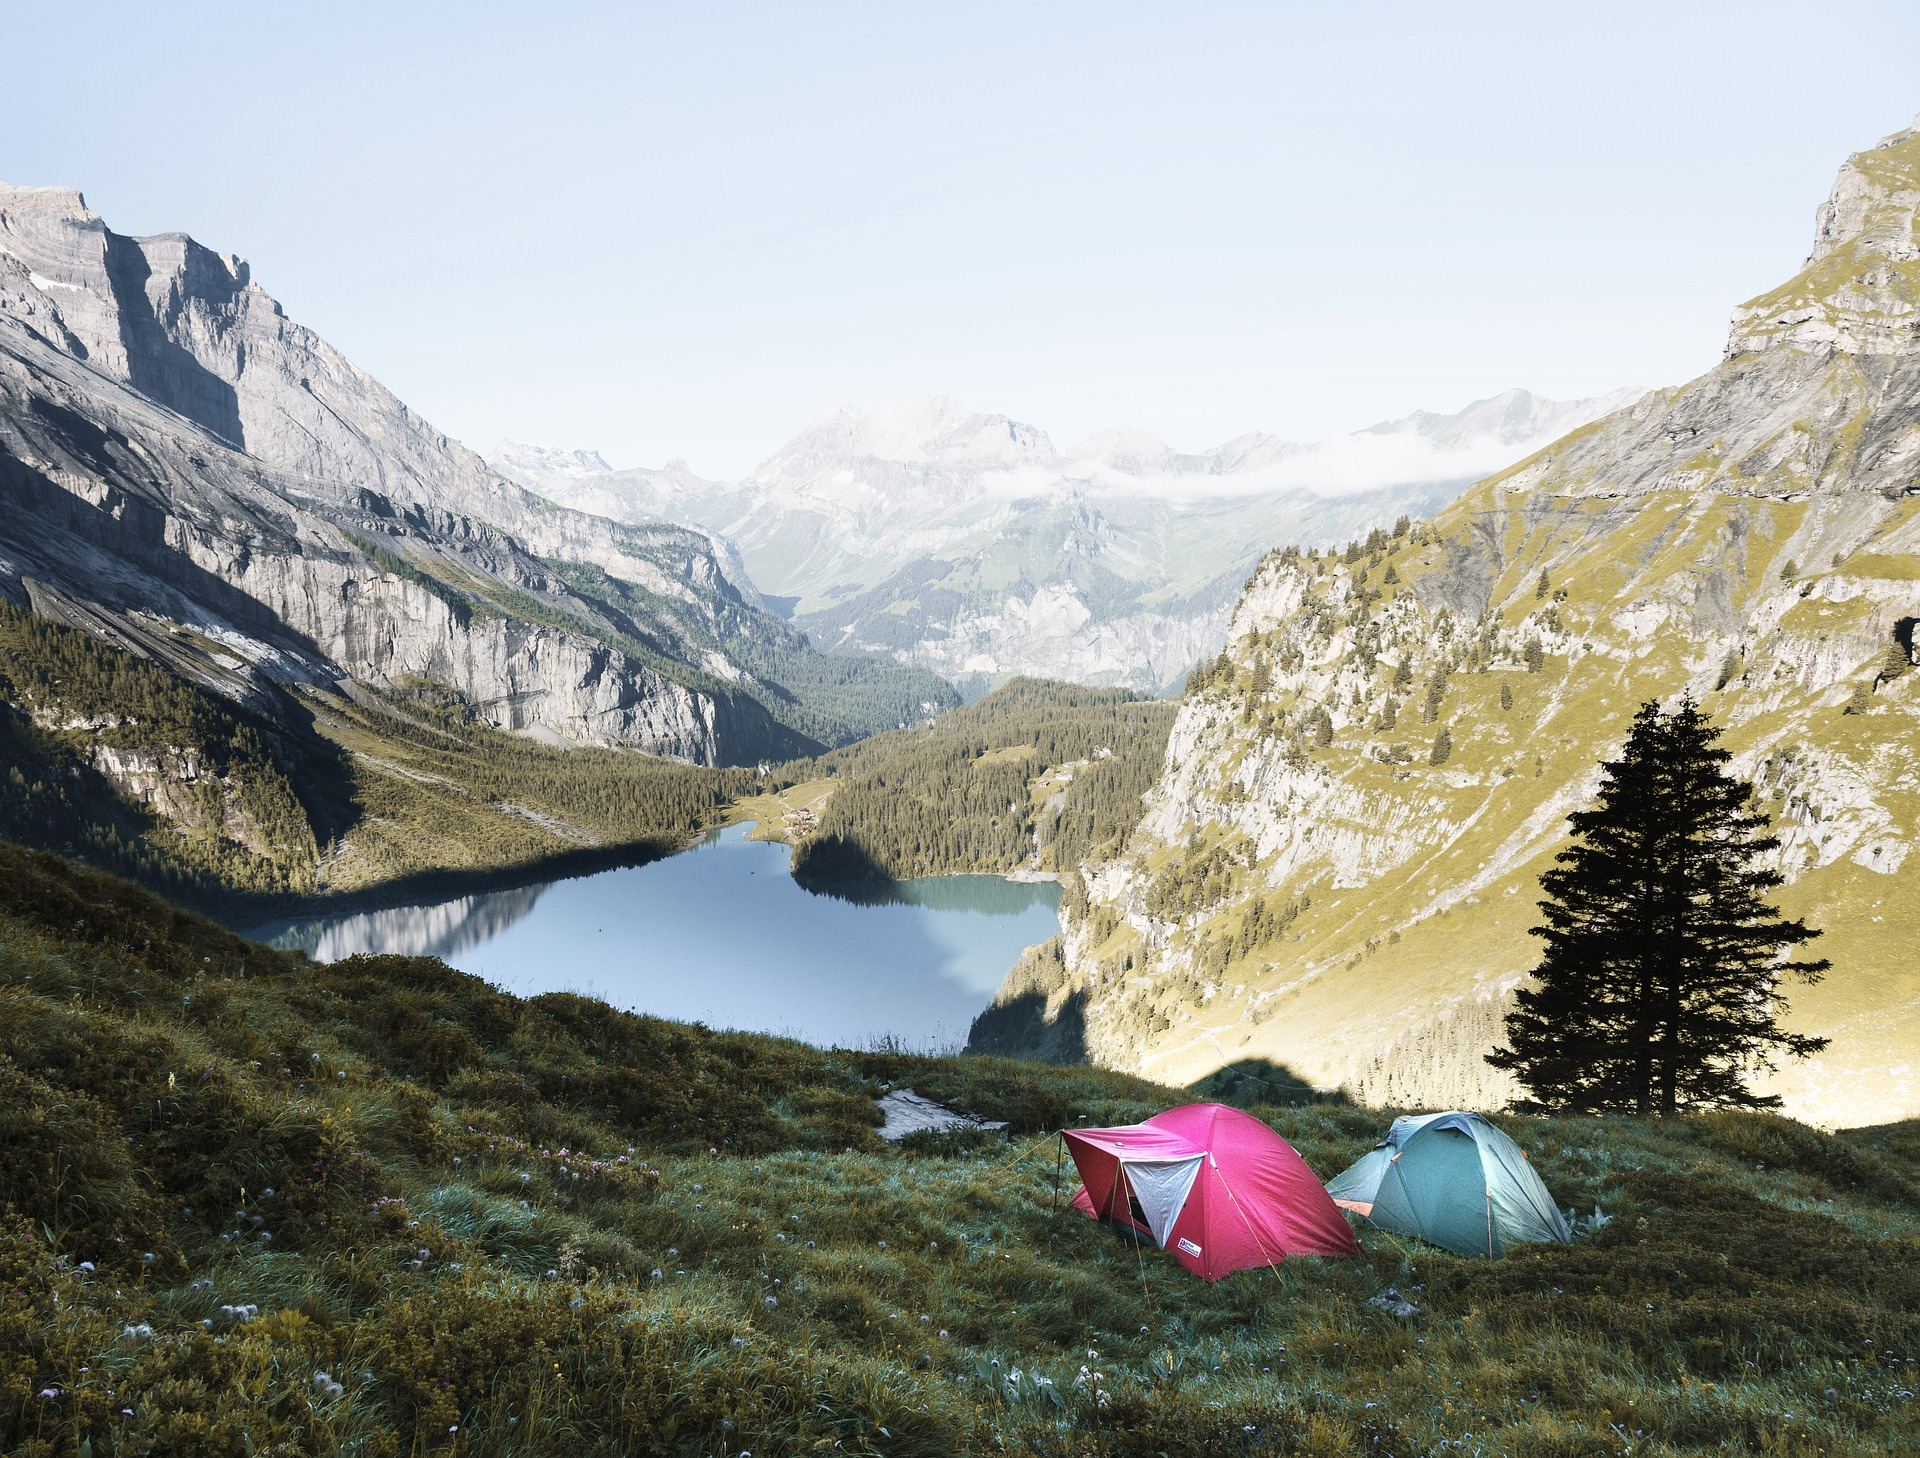 Destination image of Camping